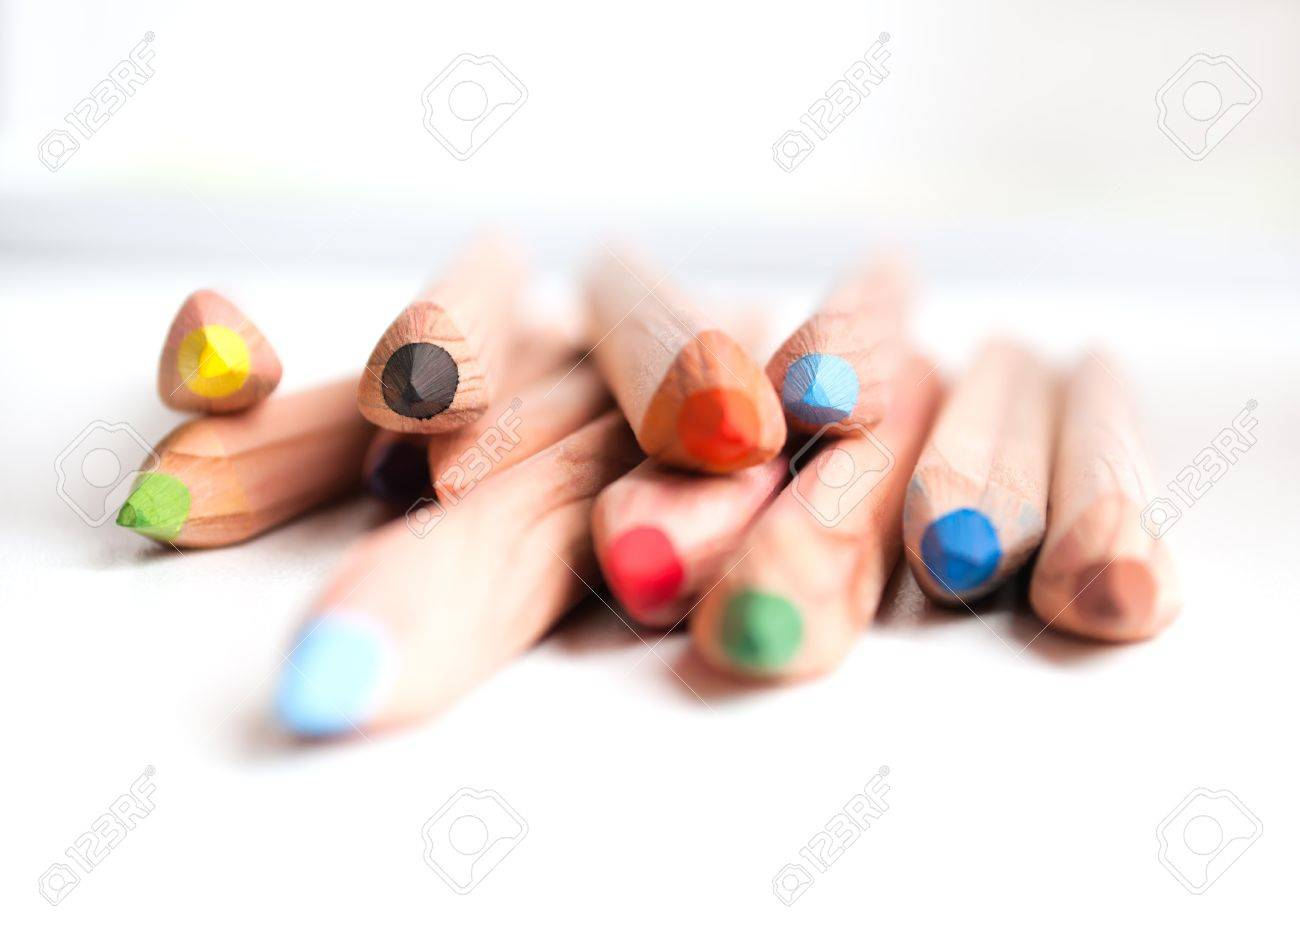 colored pencils on a window sill Small depth of field - 16024421